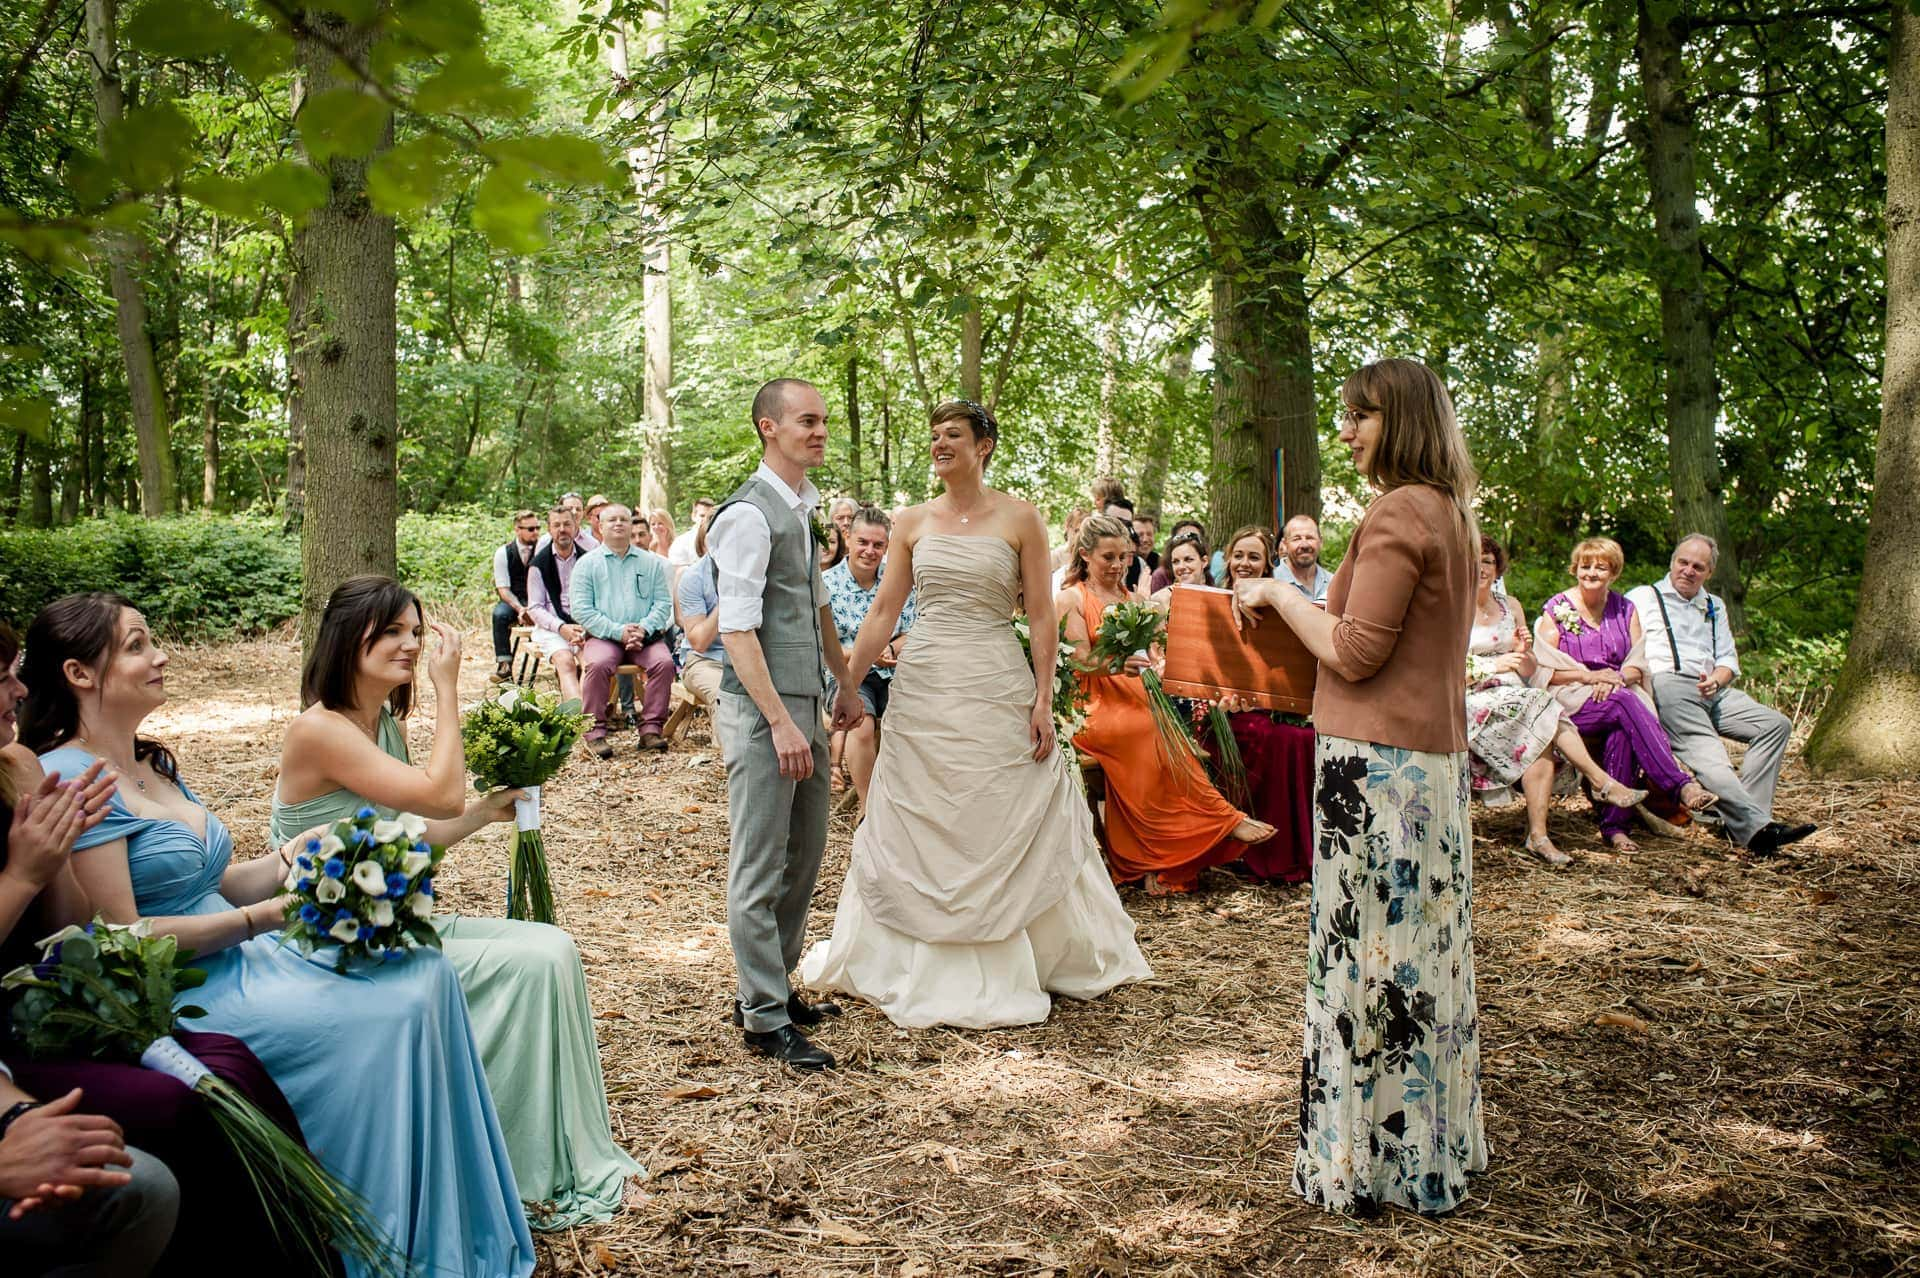 Humanist Wedding at Wildwood Bluebell